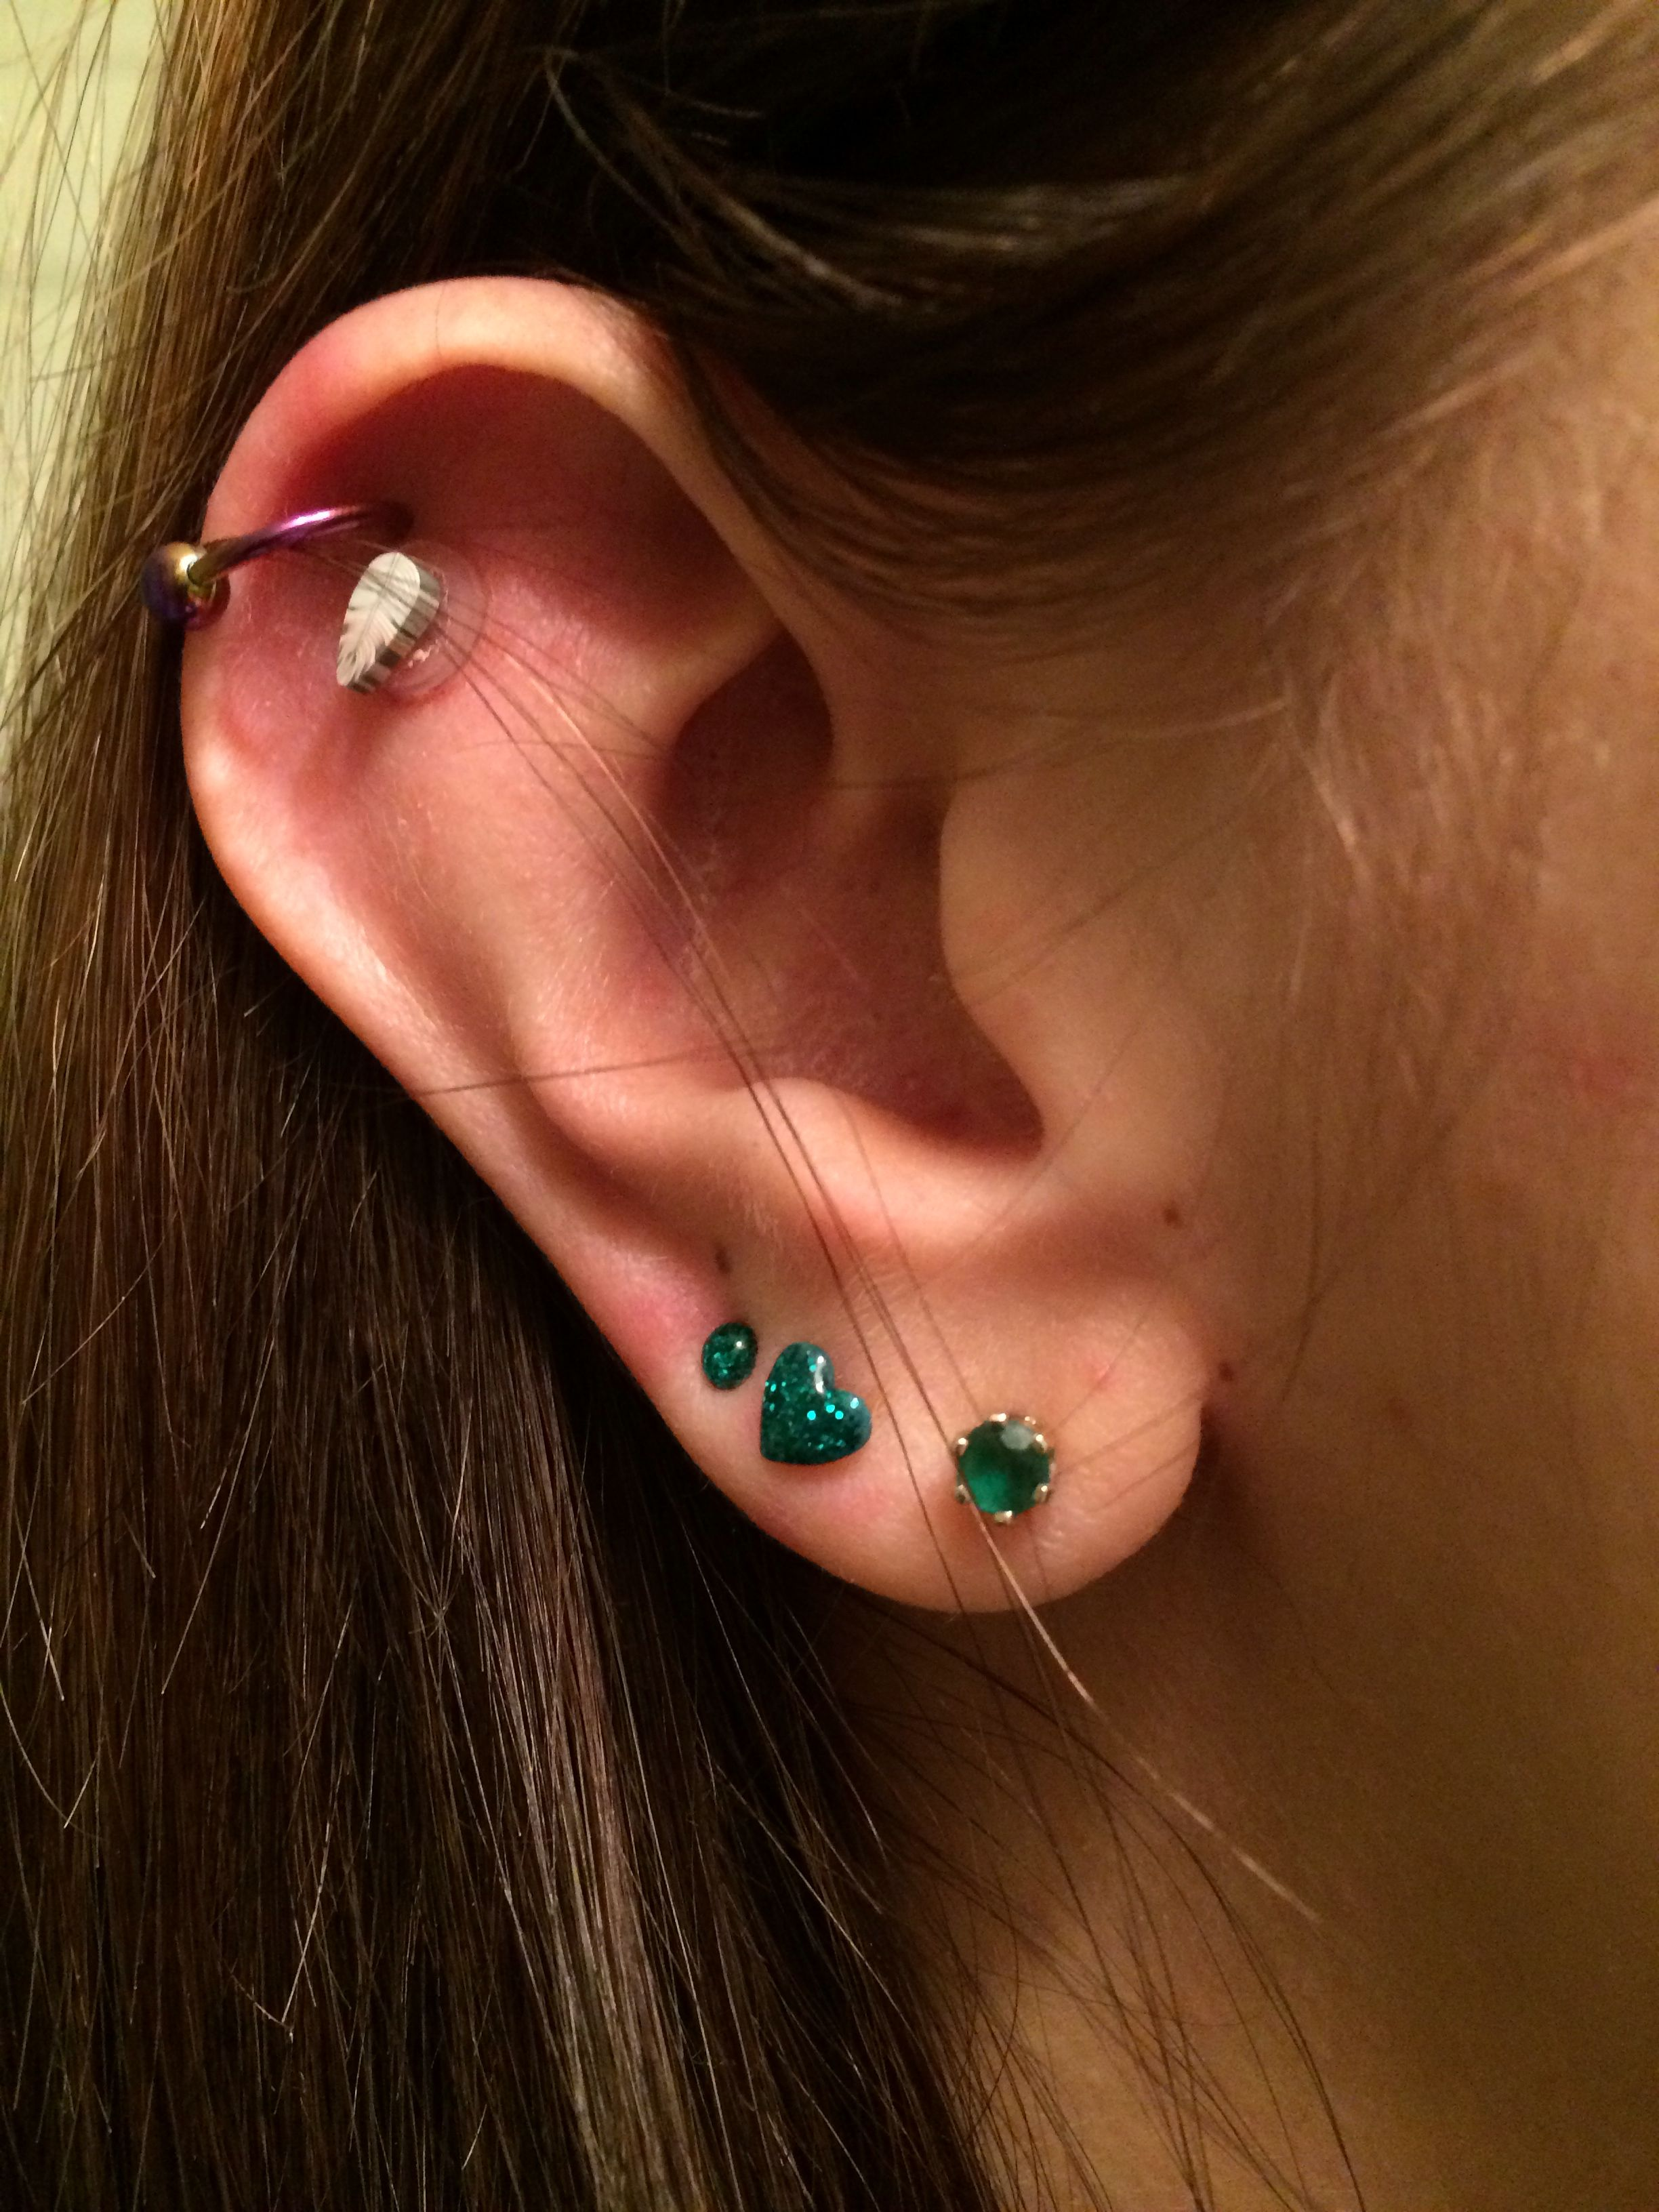 20 Ear Piercing Bump New Black Pictures And Ideas On Weric